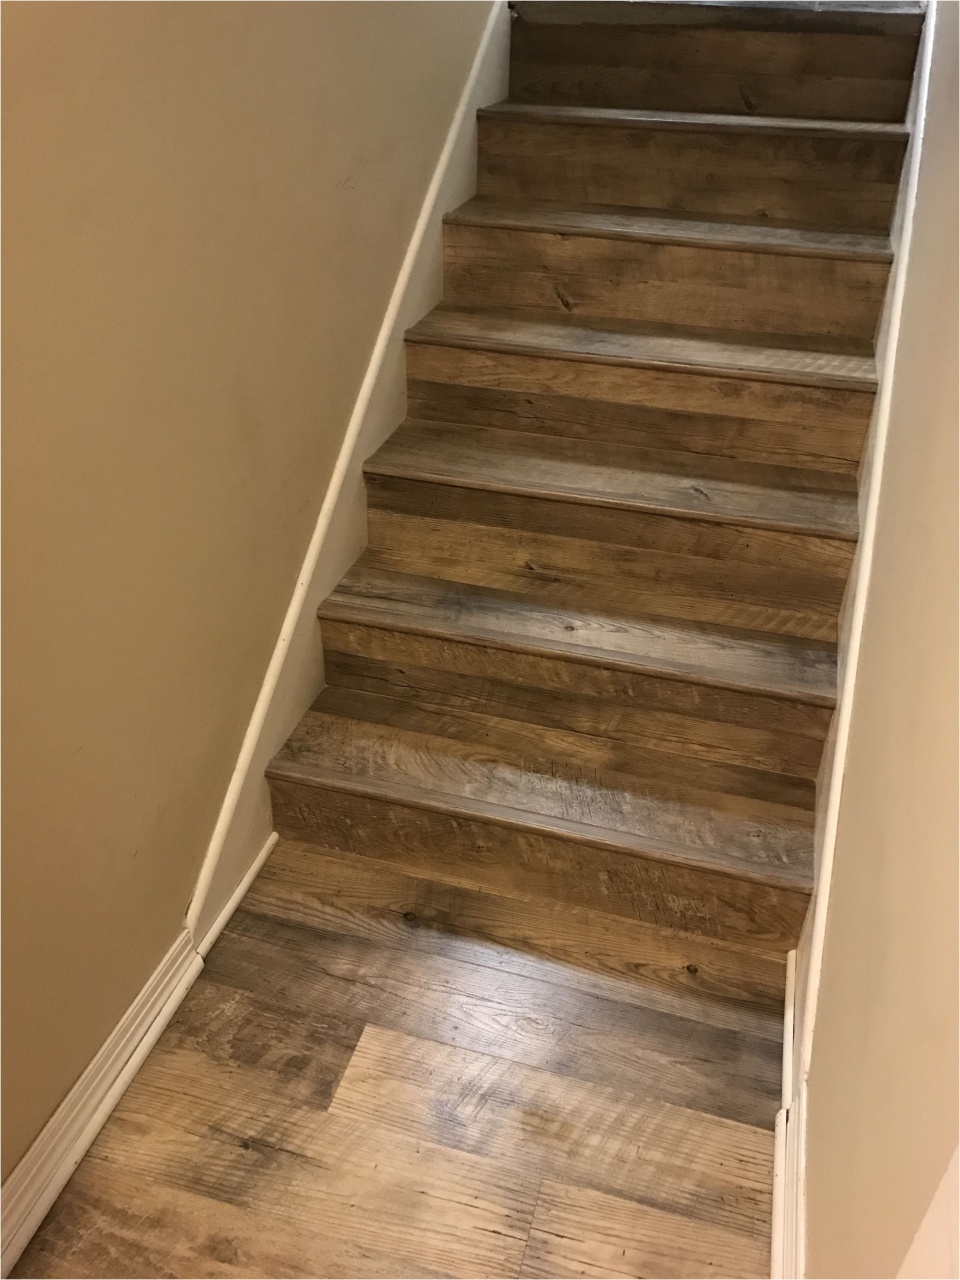 Image of: Vinyl Stairs Treads And Risers 30 Cute How To Install Hardwood Flooring Stairs Equalmarriagefl Vinyl From Vinyl Stairs Treads And Risers Pictures